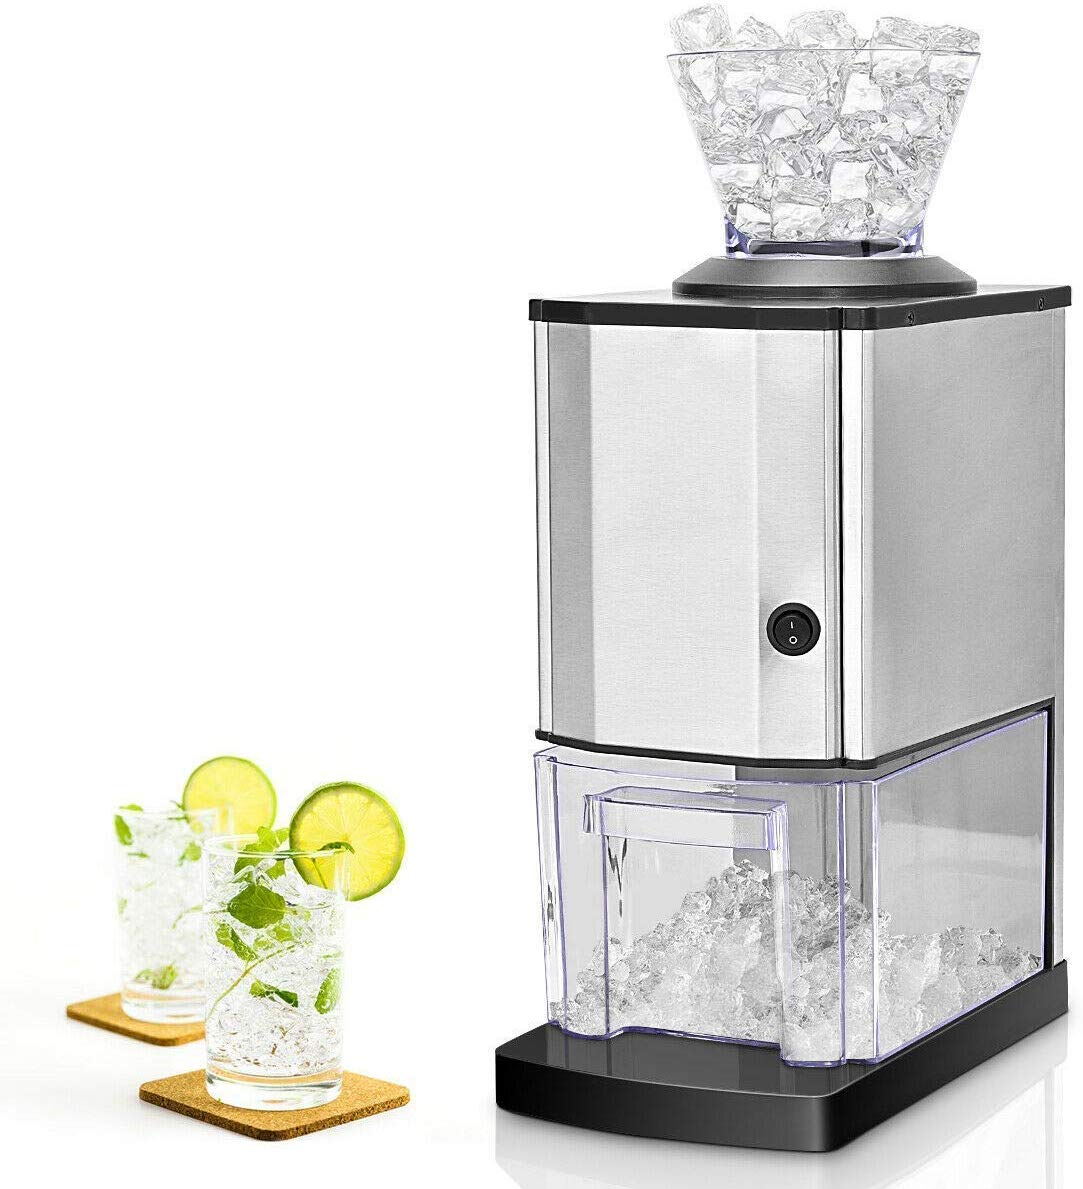 Costzon Electric Ice Crusher, Stainless Steel Ice Shaved Machine